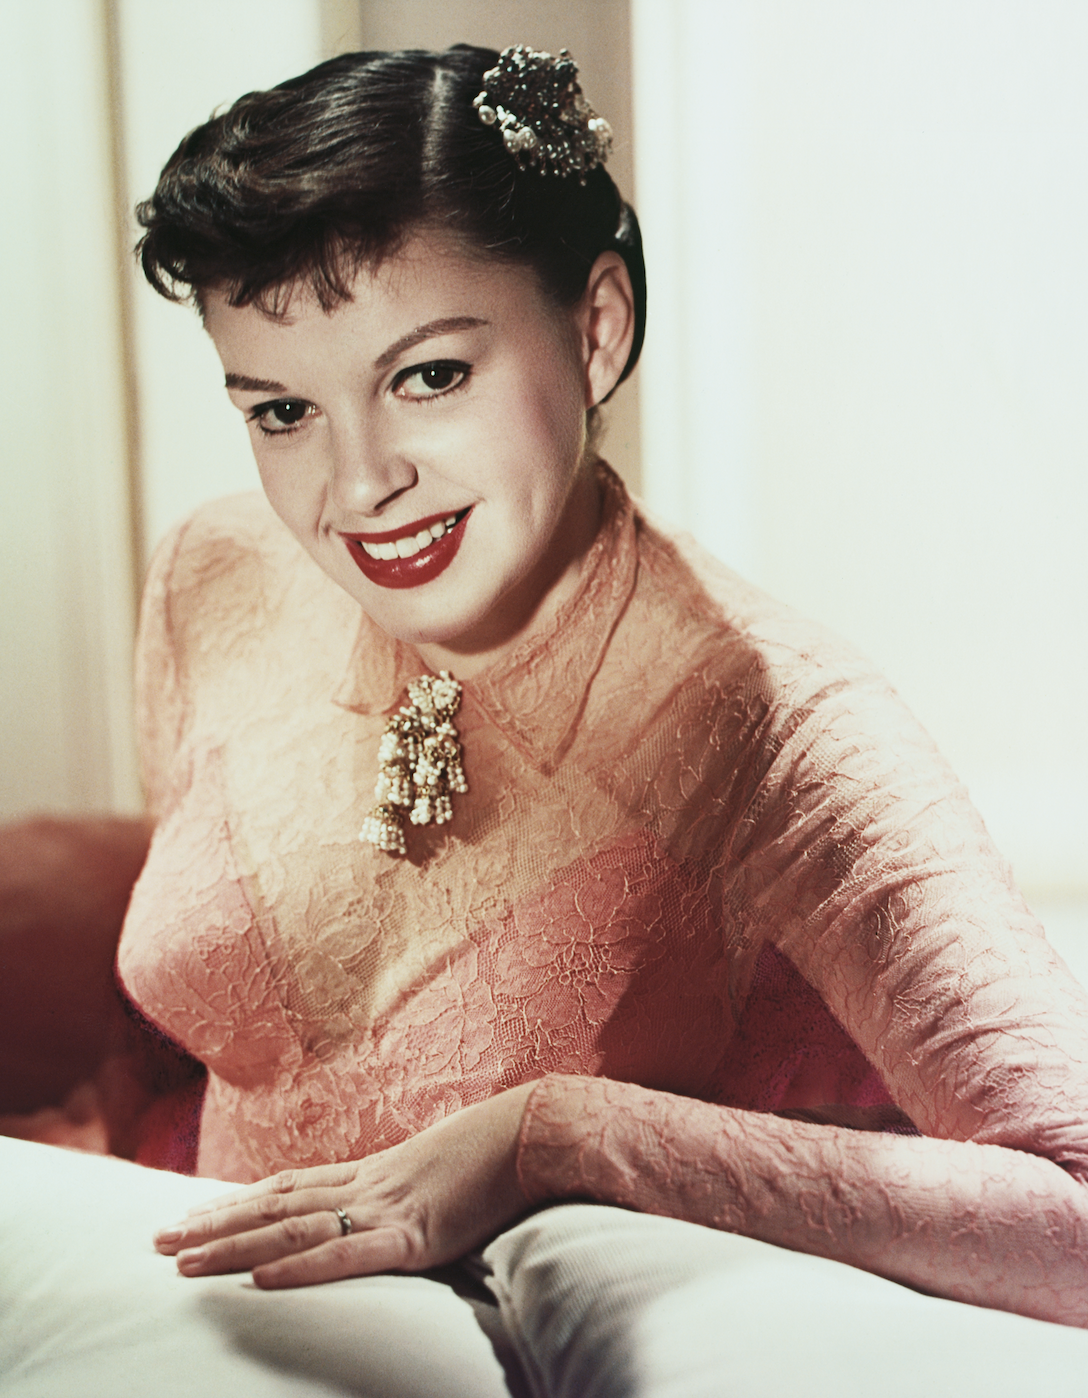 Judy Garland suffered from scoliosis, according to her biographers. [Photo: Getty]